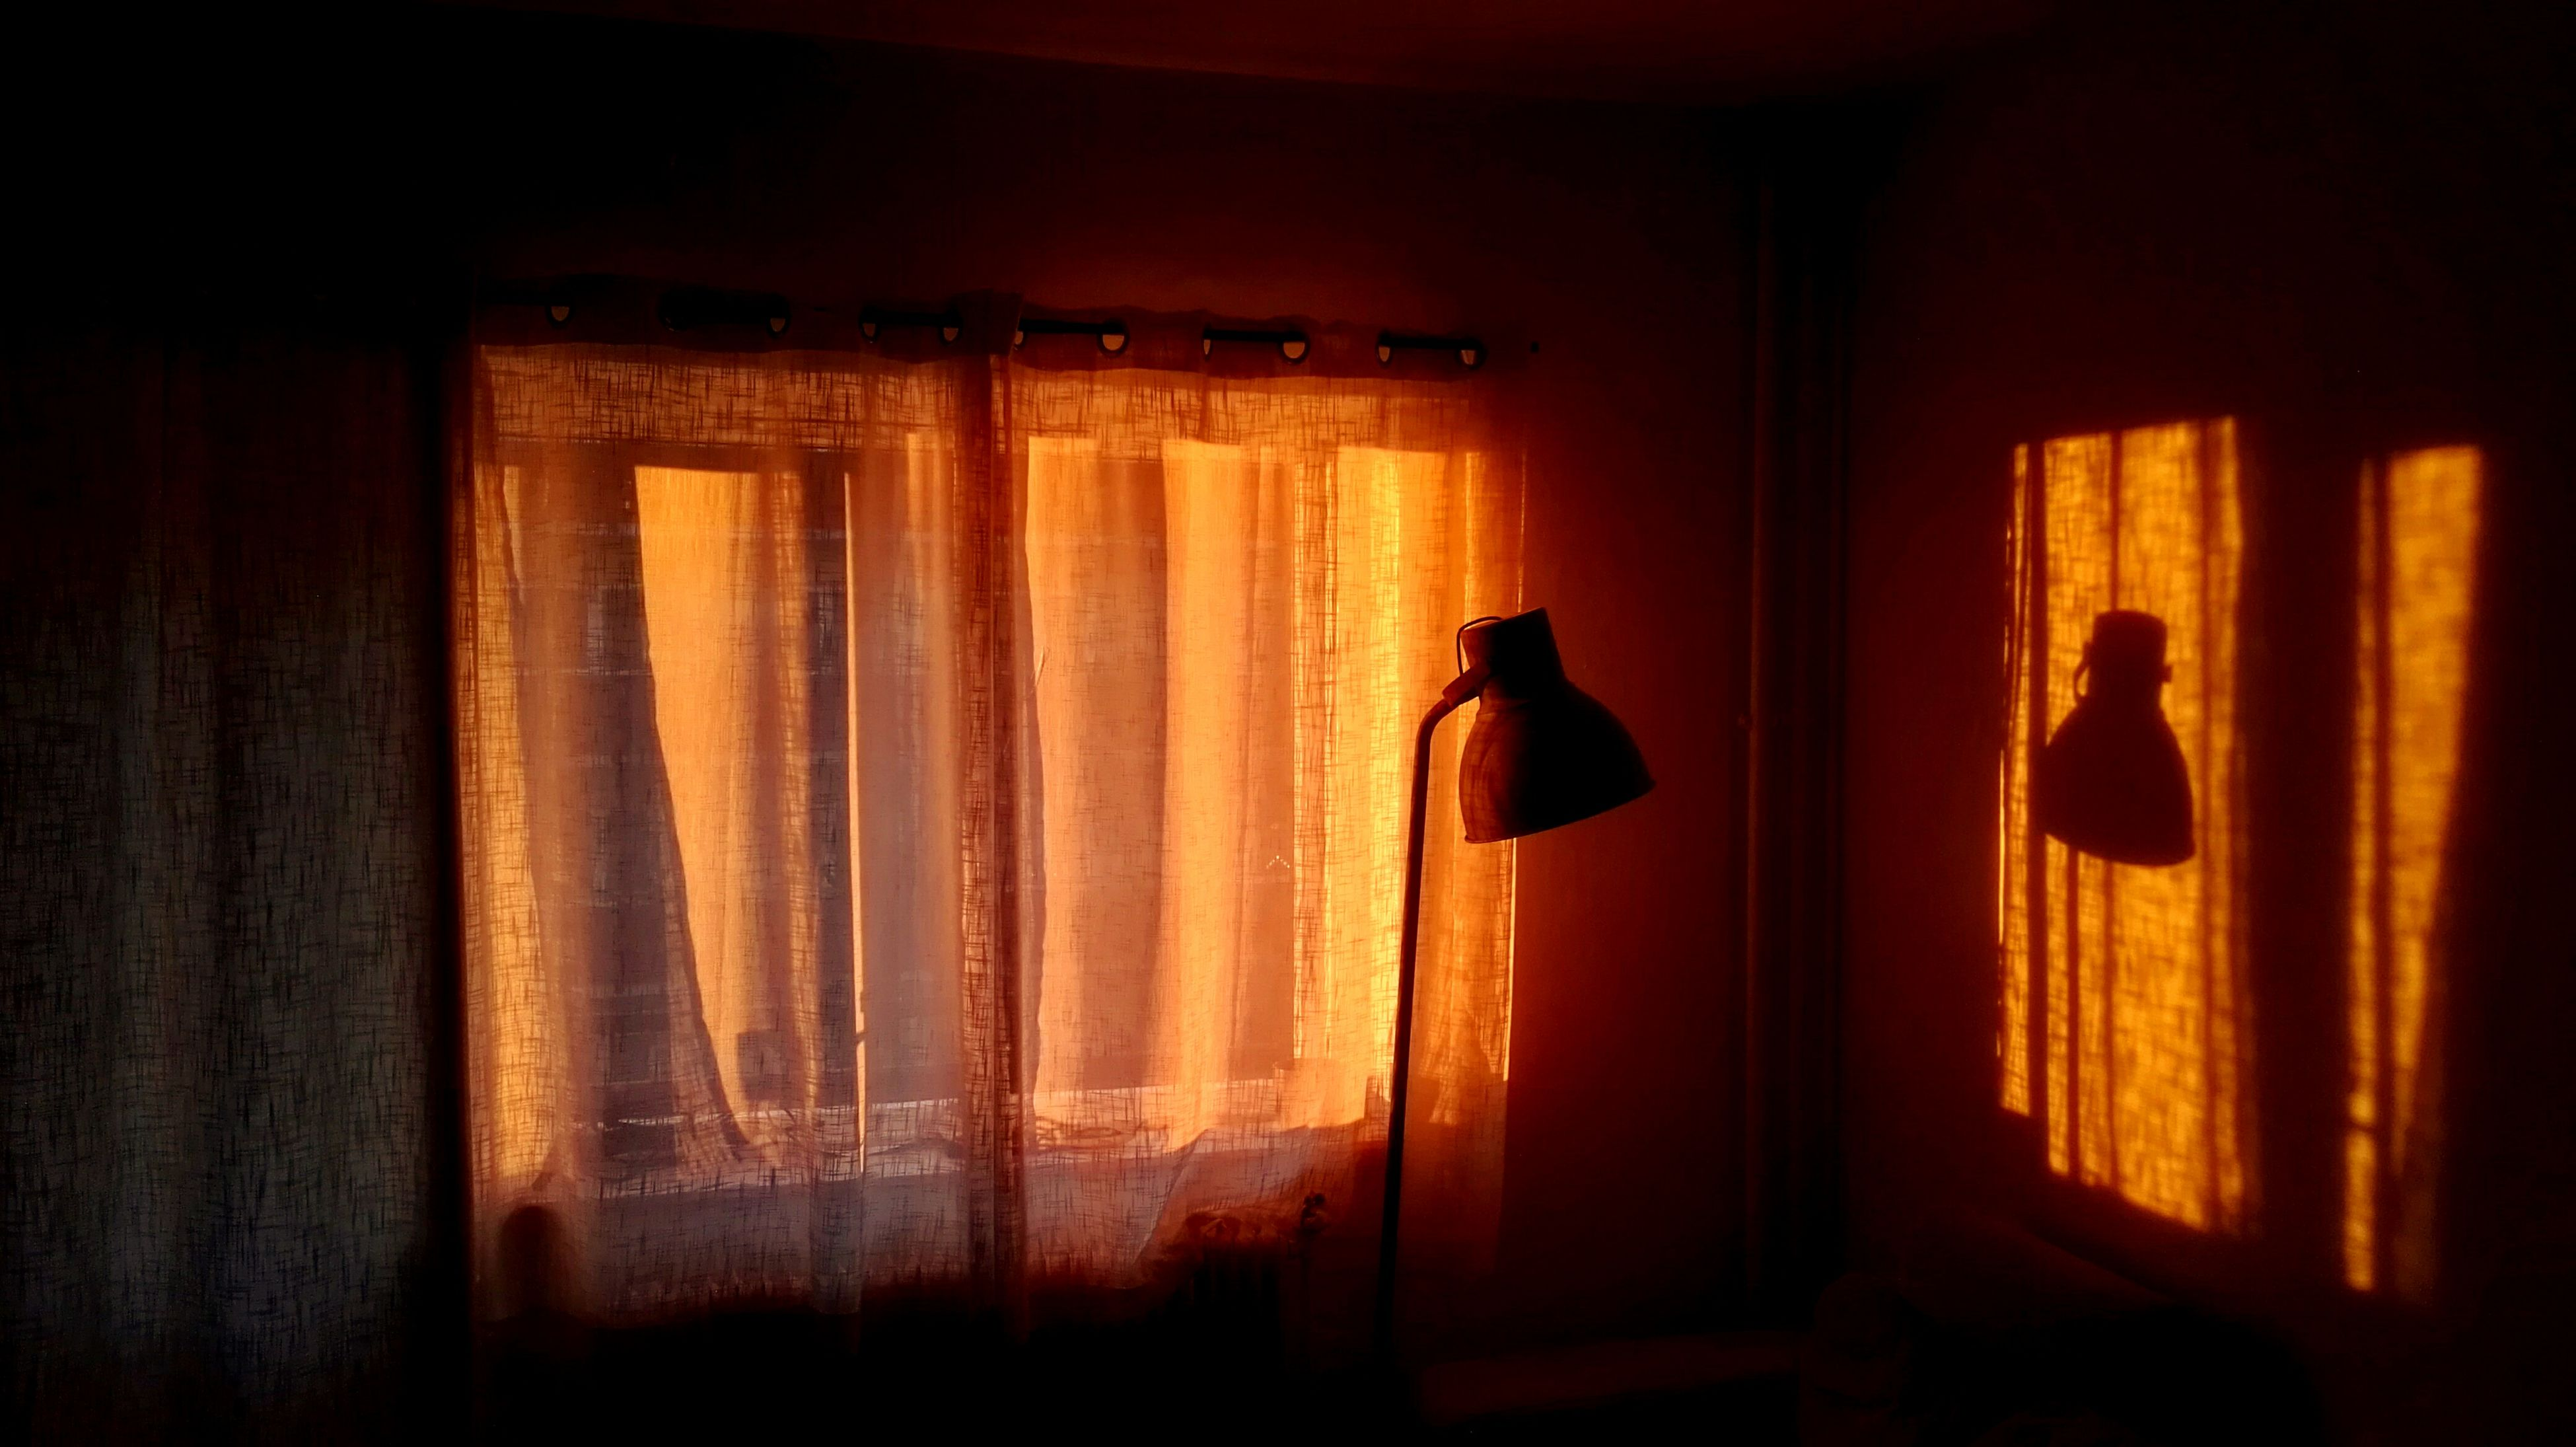 curtain, indoors, no people, drapes, home interior, illuminated, animal themes, day